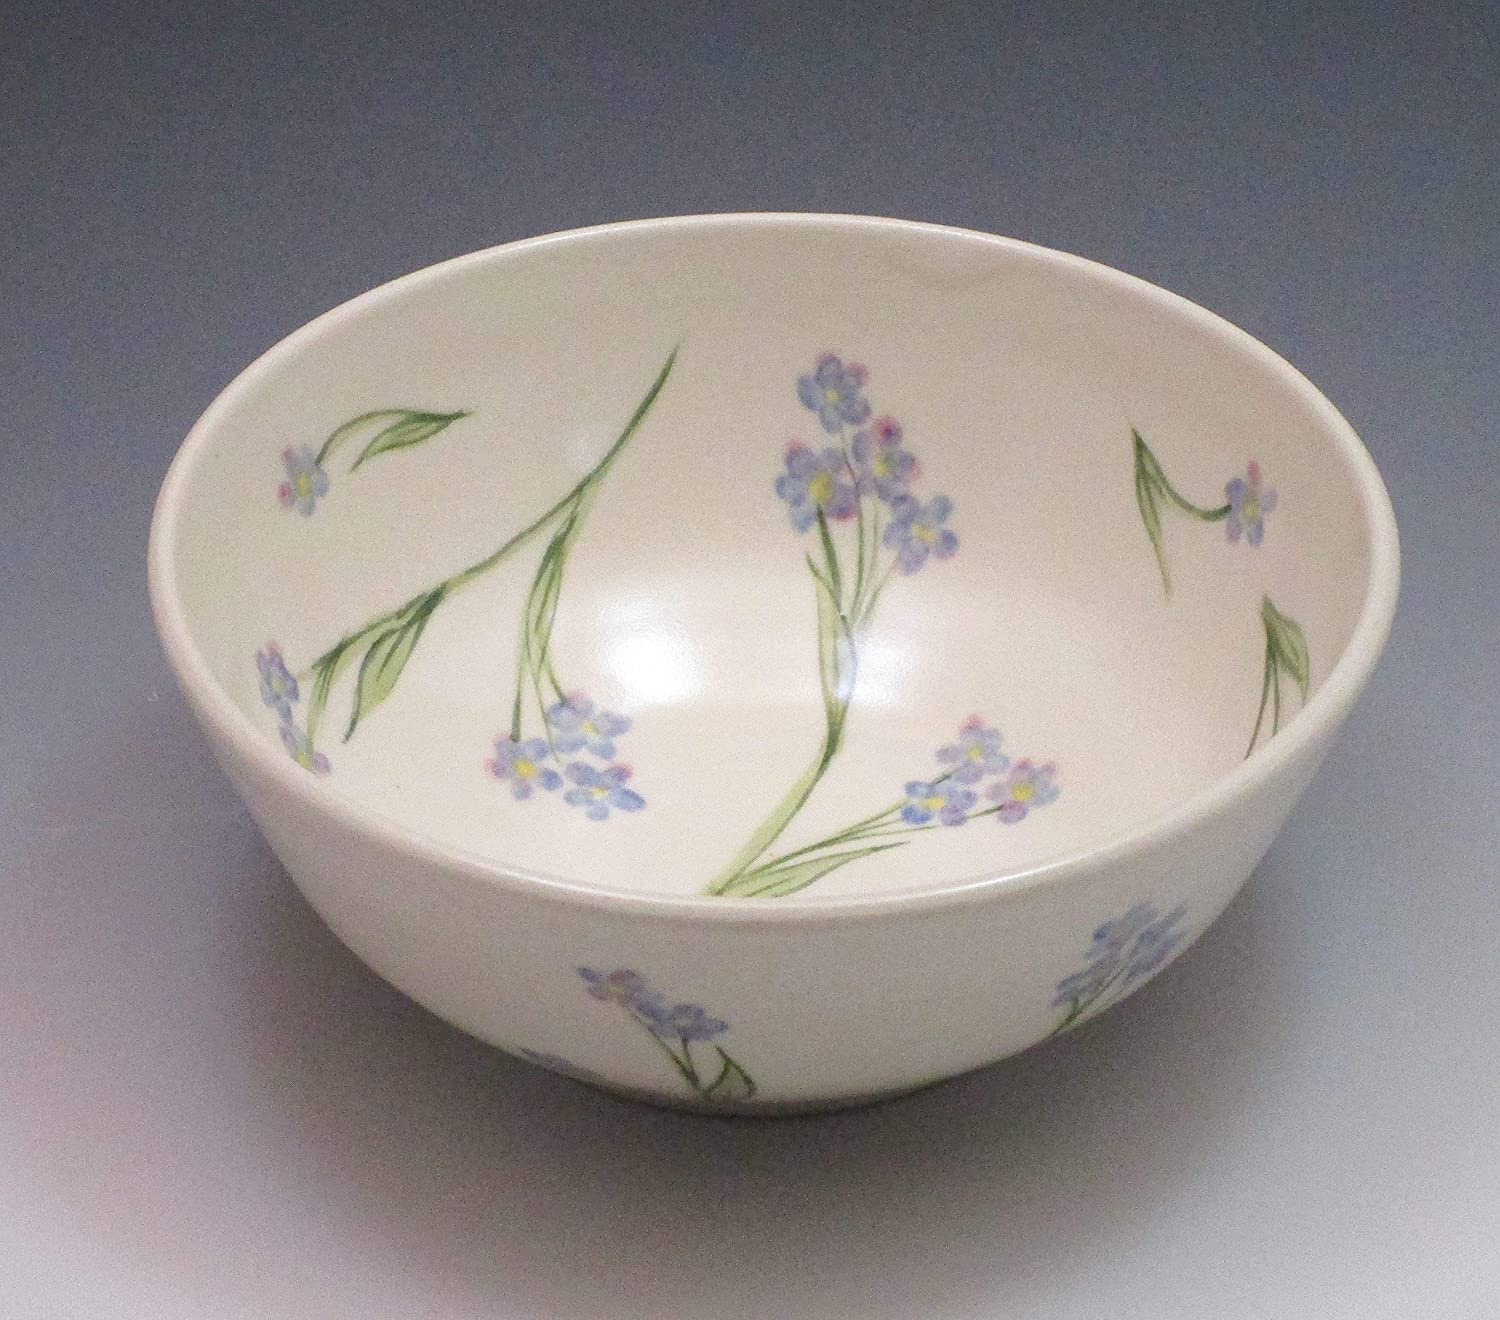 Porcelain cereal or soup bowl, hand thrown and hand painted in forget-me-not design